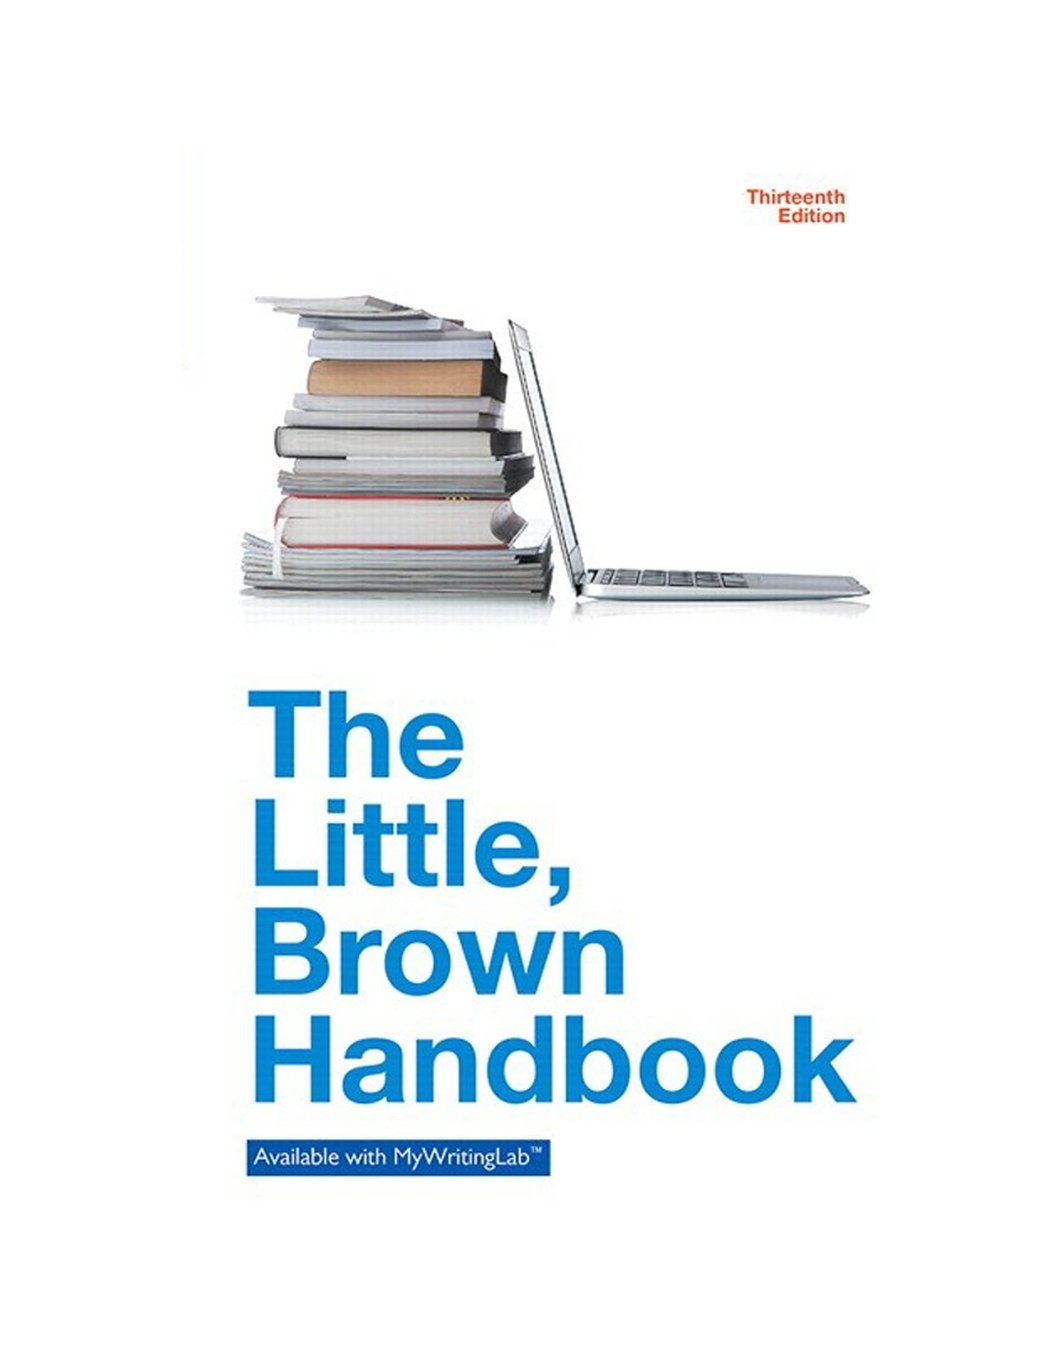 Buy The Little Brown Handbook Book Online at Low Prices in India | The  Little Brown Handbook Reviews & Ratings - Amazon.in